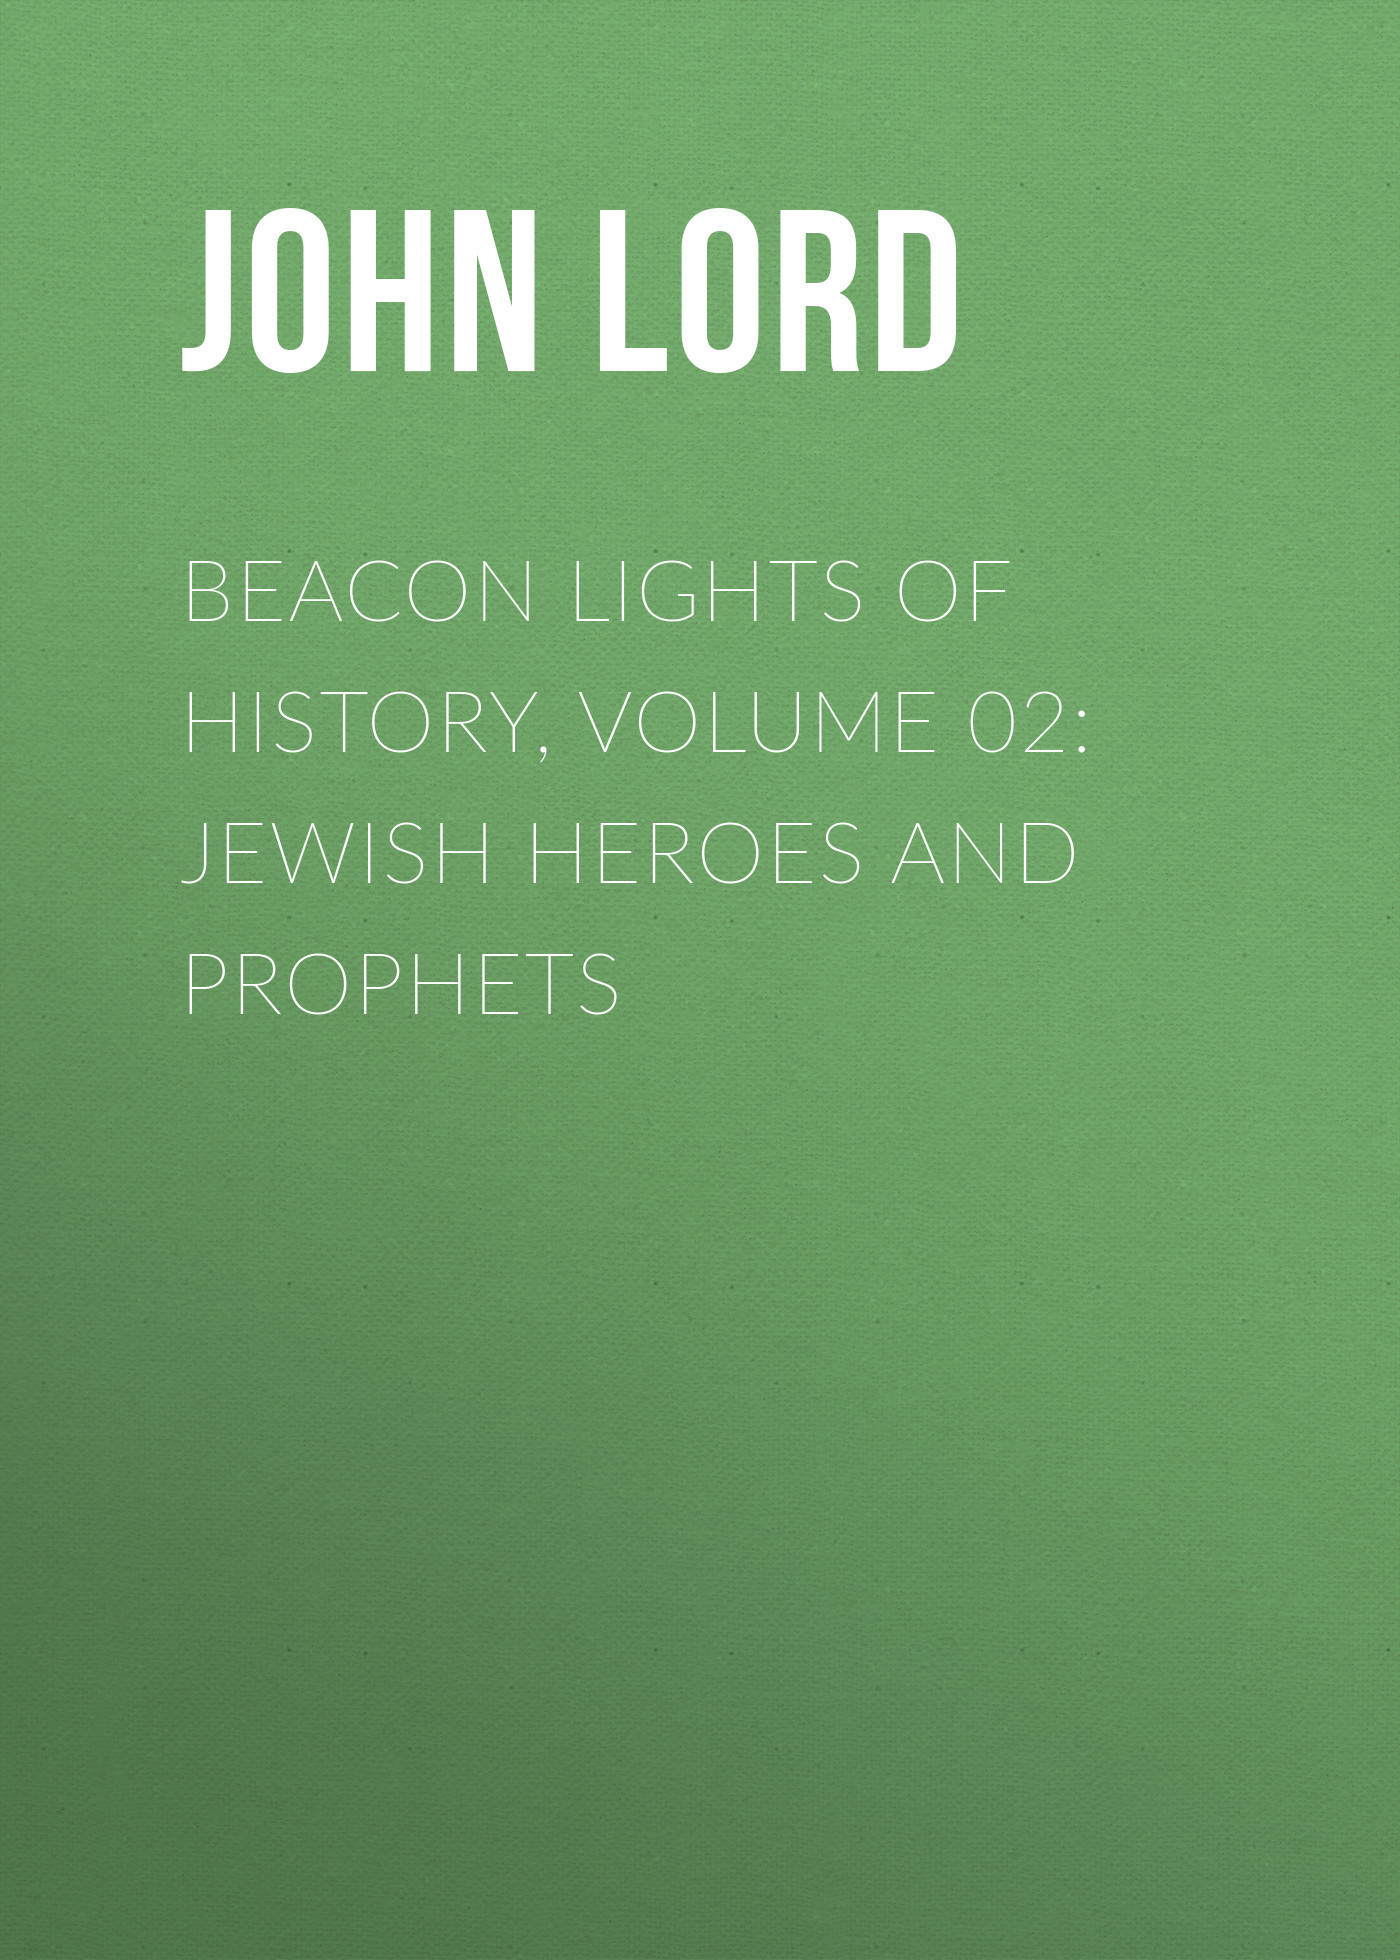 John Lord Beacon Lights of History, Volume 02: Jewish Heroes and Prophets